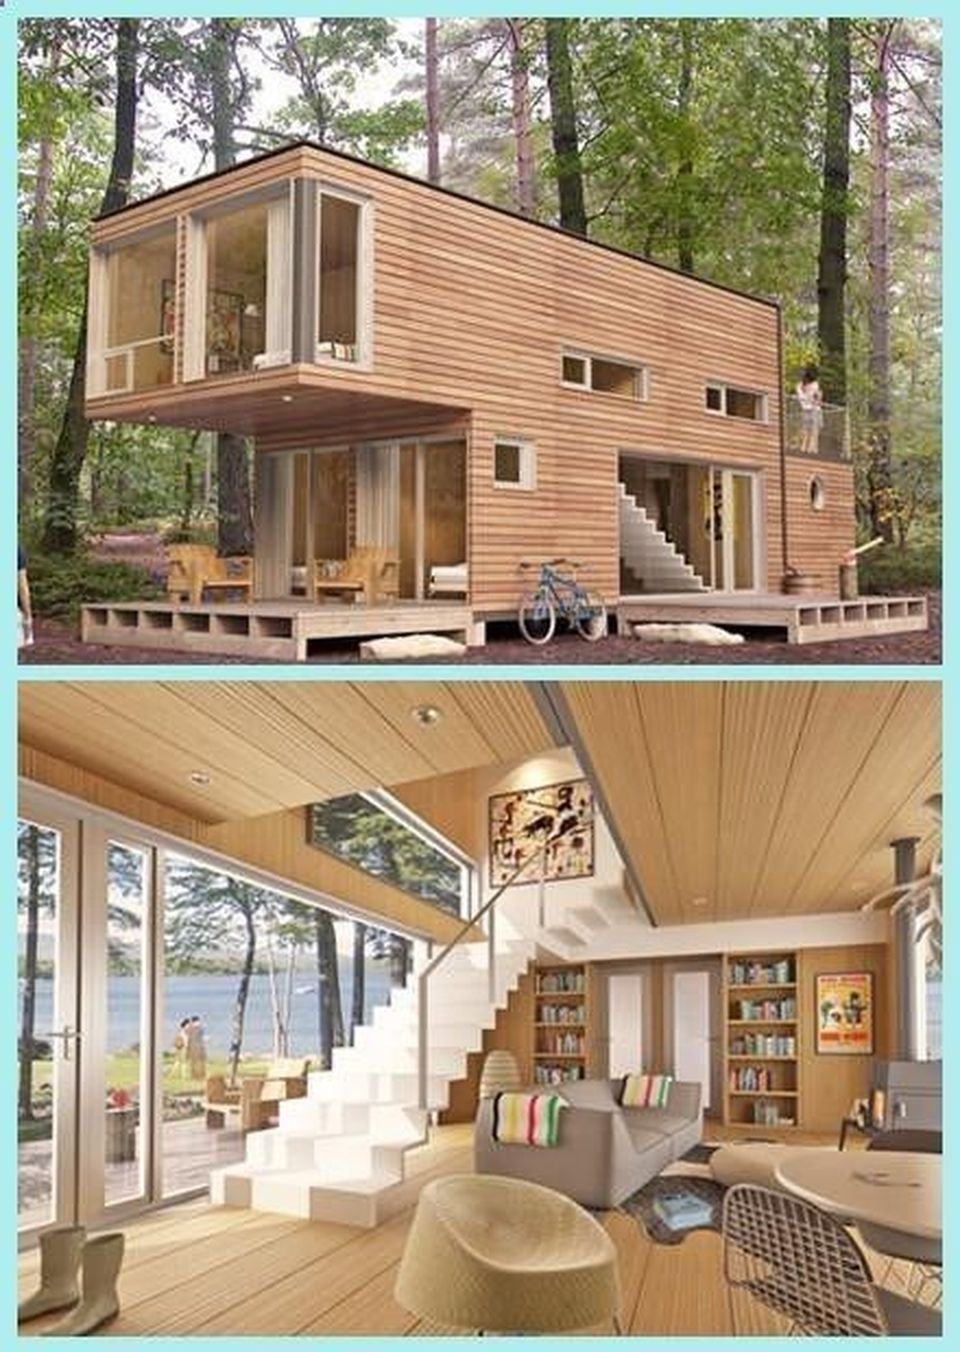 Best shipping container house design ideas also rh co pinterest